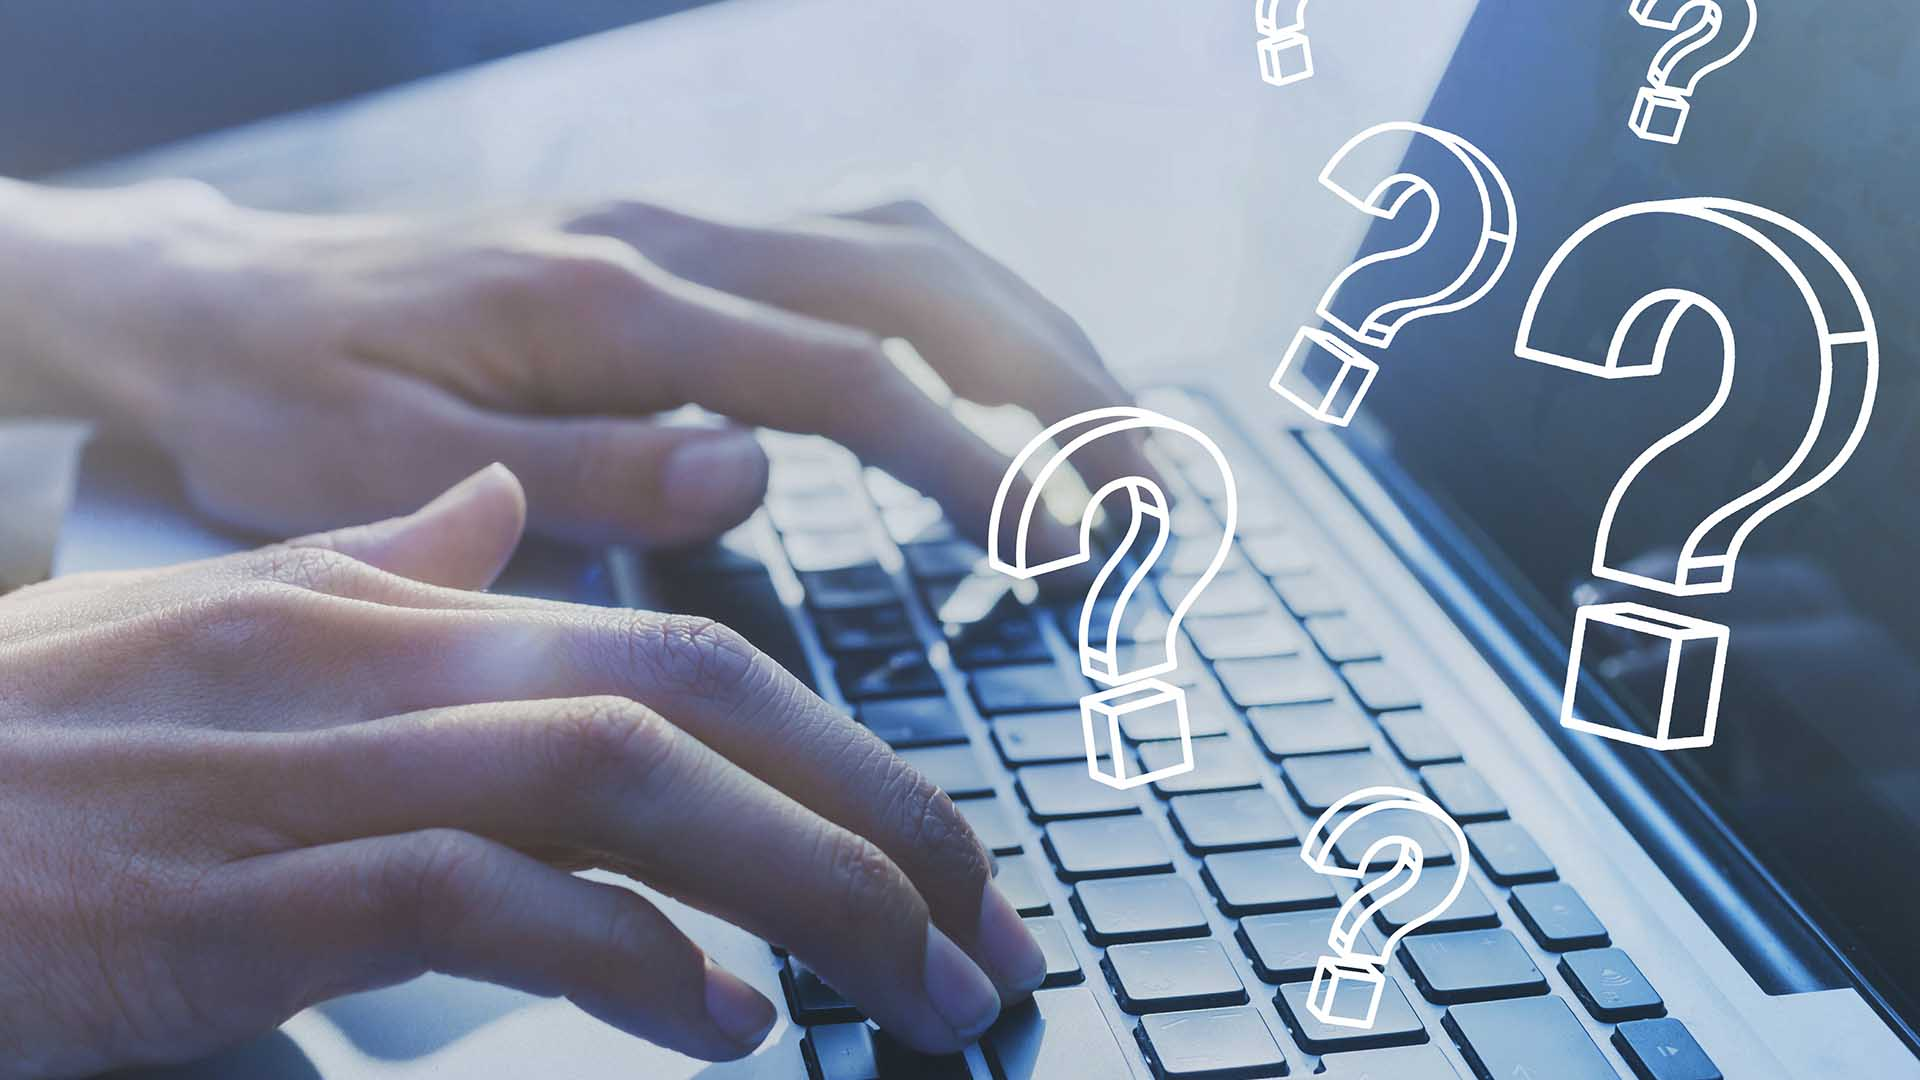 Asking Your IT Company About Cybersecurity